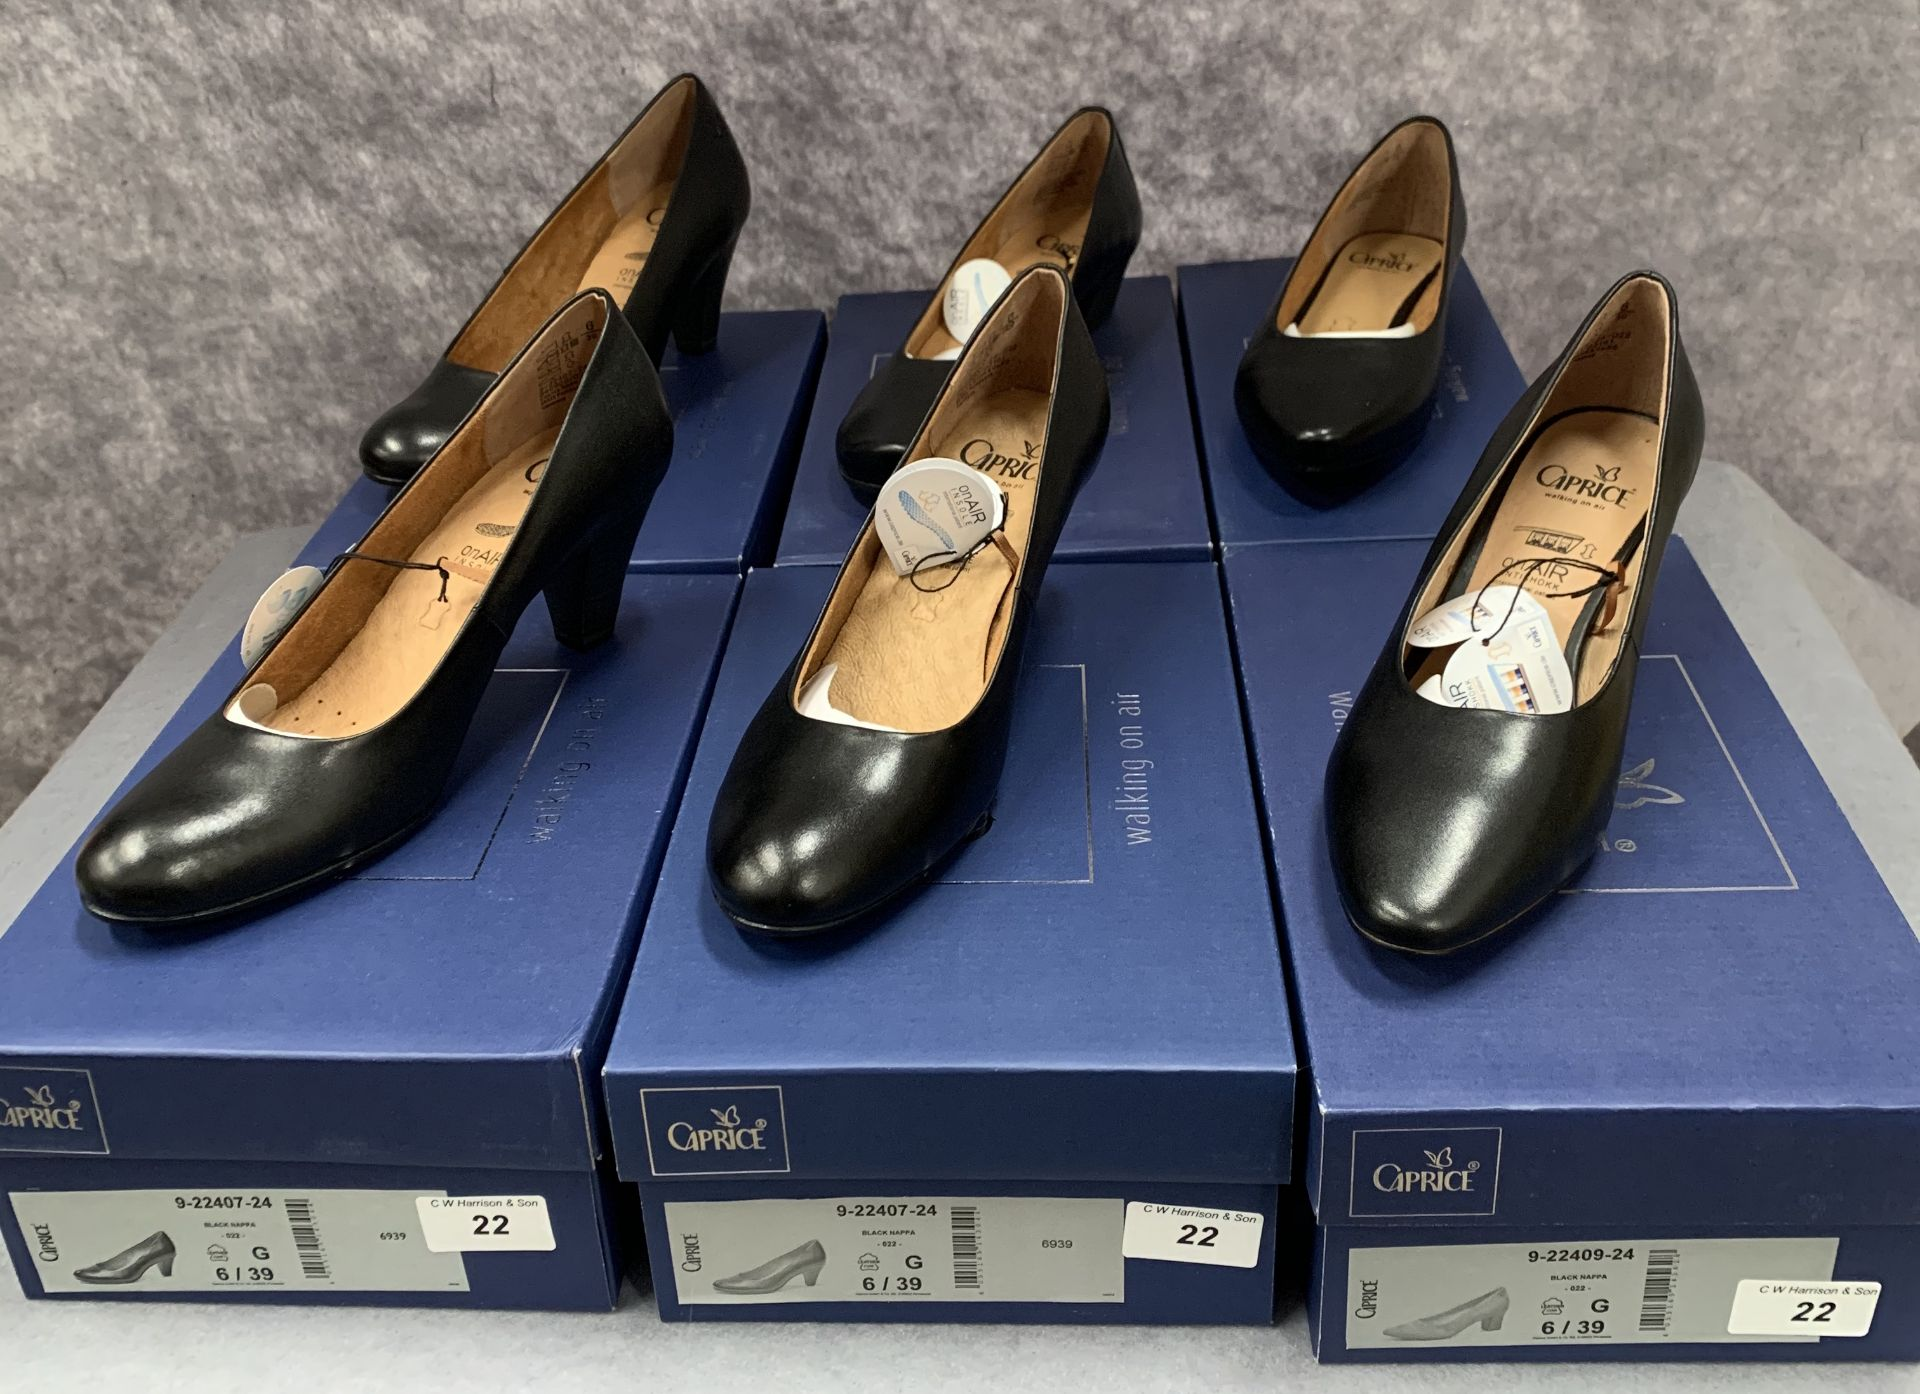 Lot 22 - Six pairs of Caprice ladies shoes in black, various styles, size 6, retail price £59.